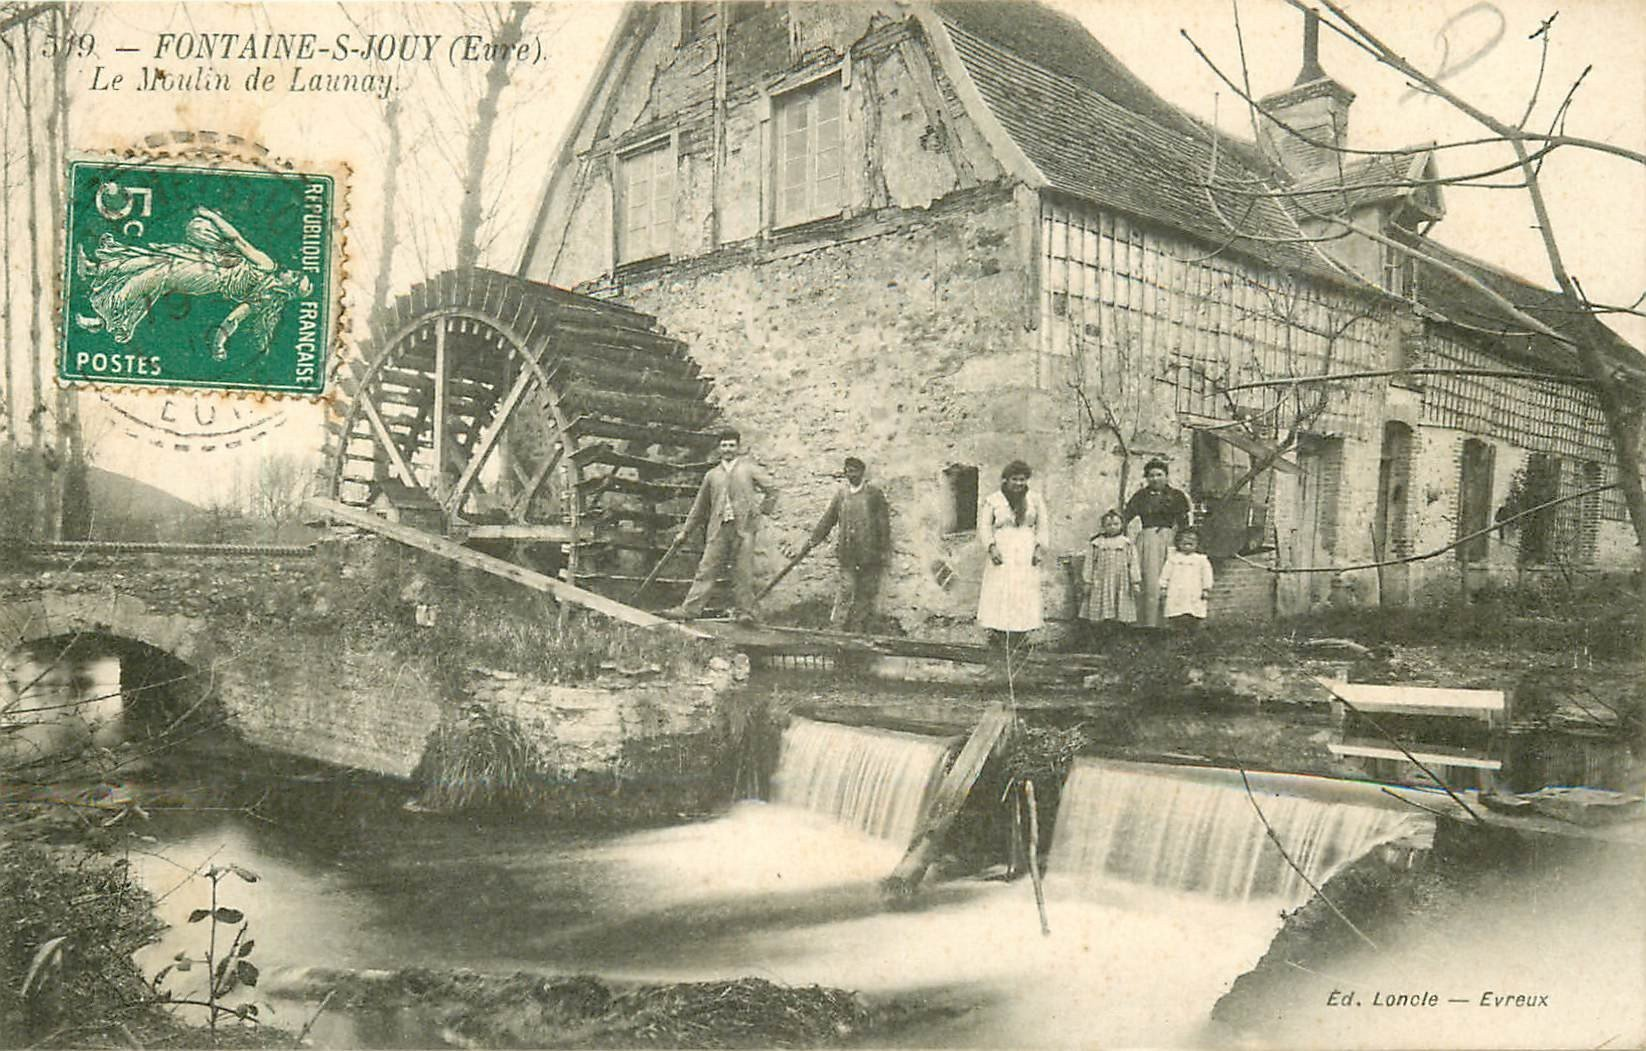 27 fontaine sous jouy le moulin eau de launay 1910 avec meuniers et cluse. Black Bedroom Furniture Sets. Home Design Ideas